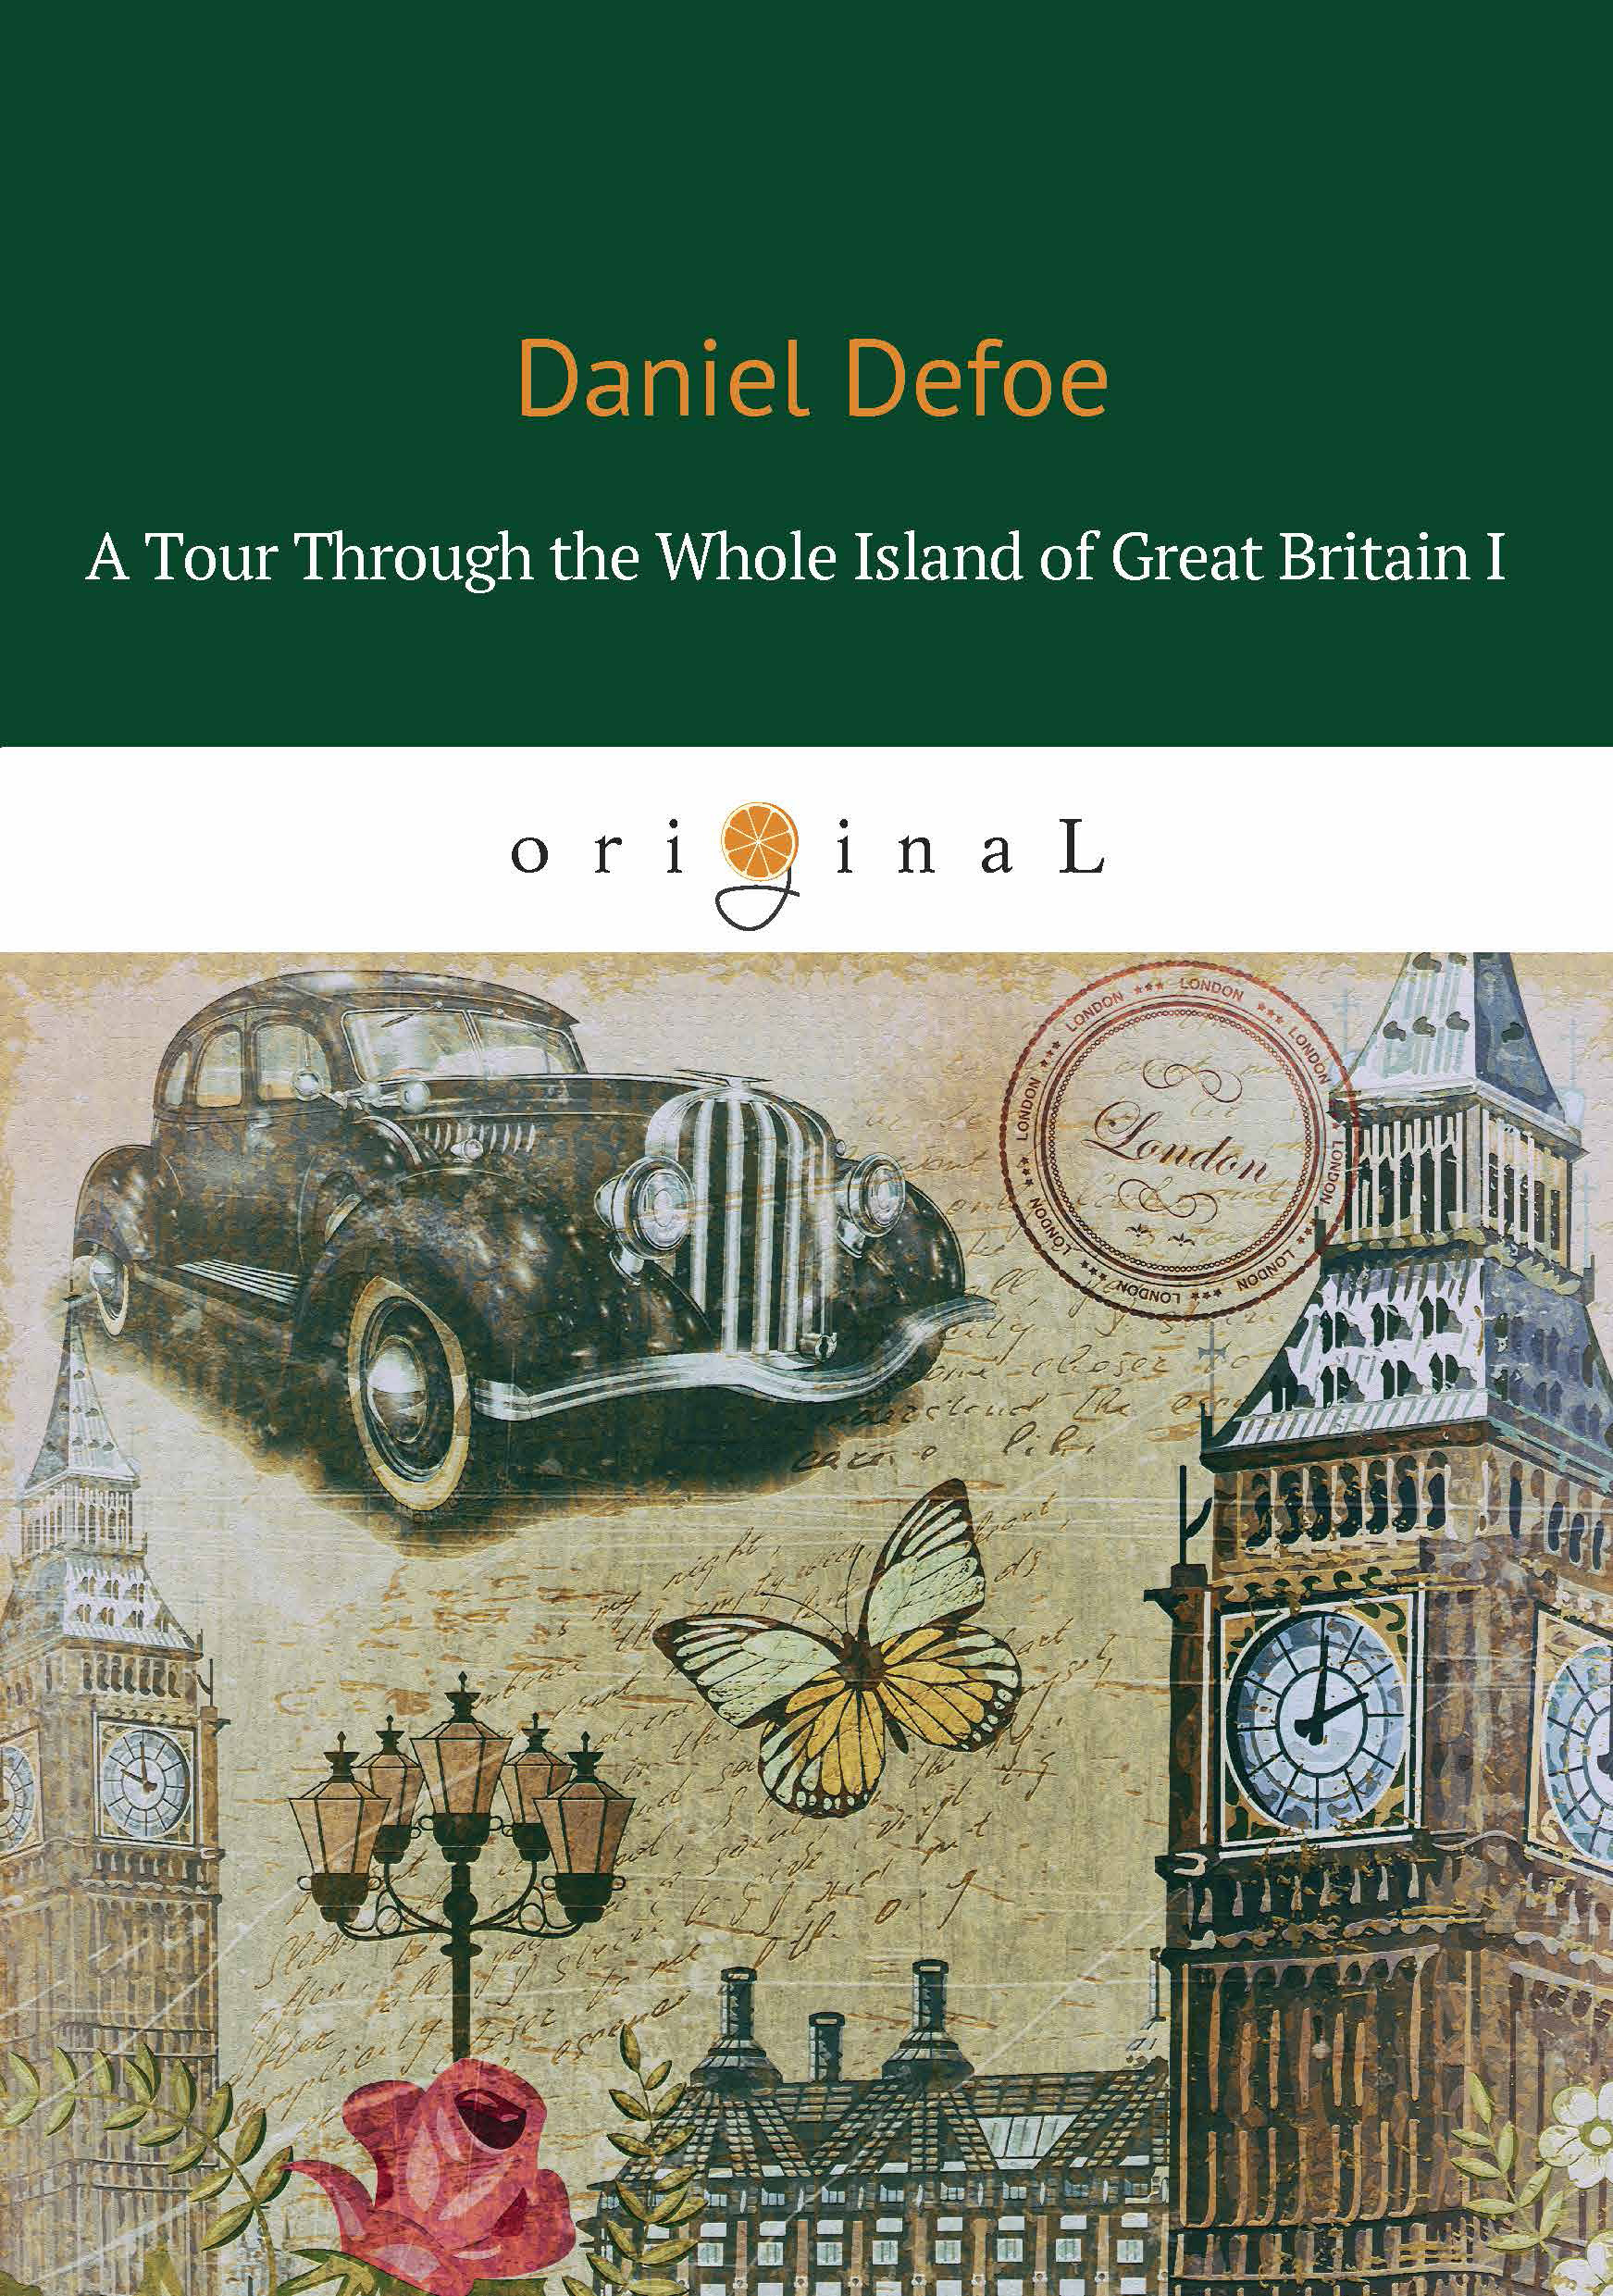 Даниэль Дефо A Tour Through the Whole Island of Great Britain I defoe d a tour through the whole island of great britain 1 тур через великобританию 1 т 6 на англ яз